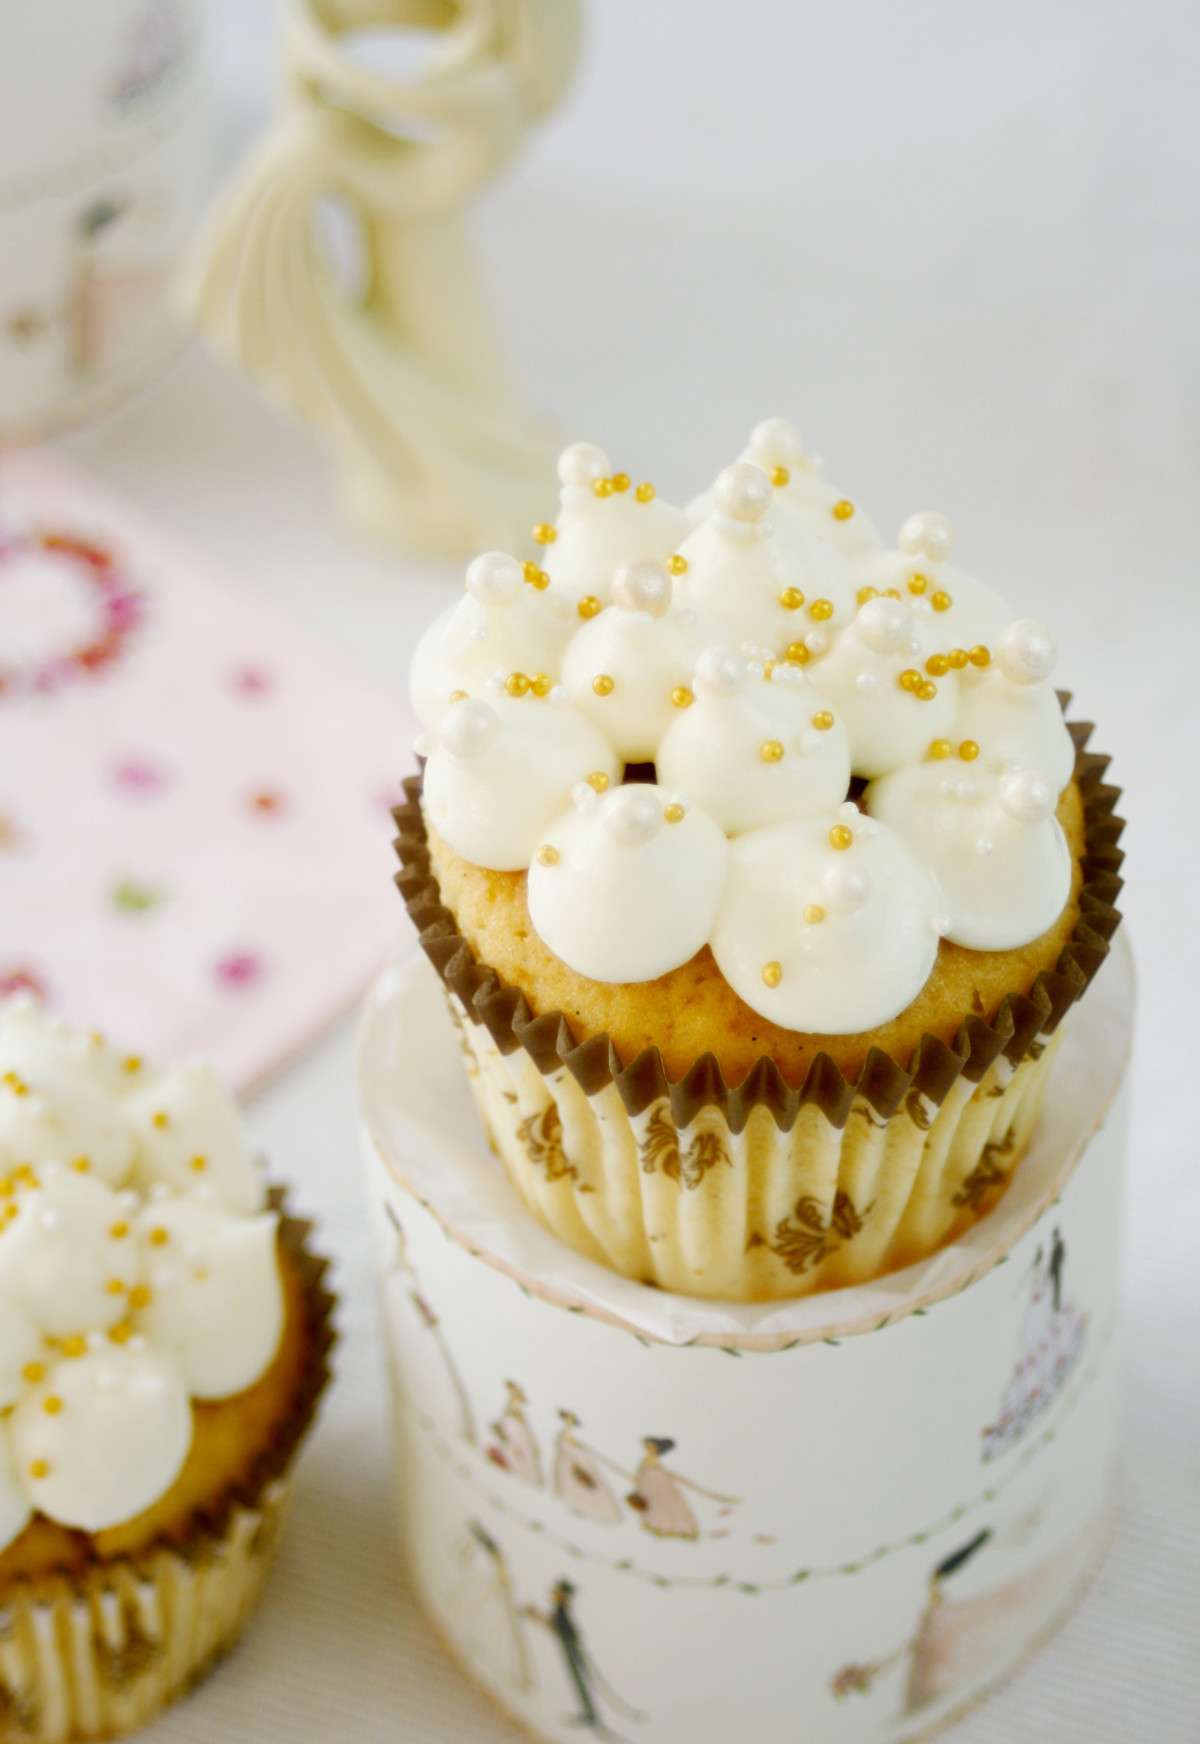 Sweet Table mit Kokos Cupcakes // Cupcakes with coconut by http://babyrockmyday.com/kokos-cupcakes/